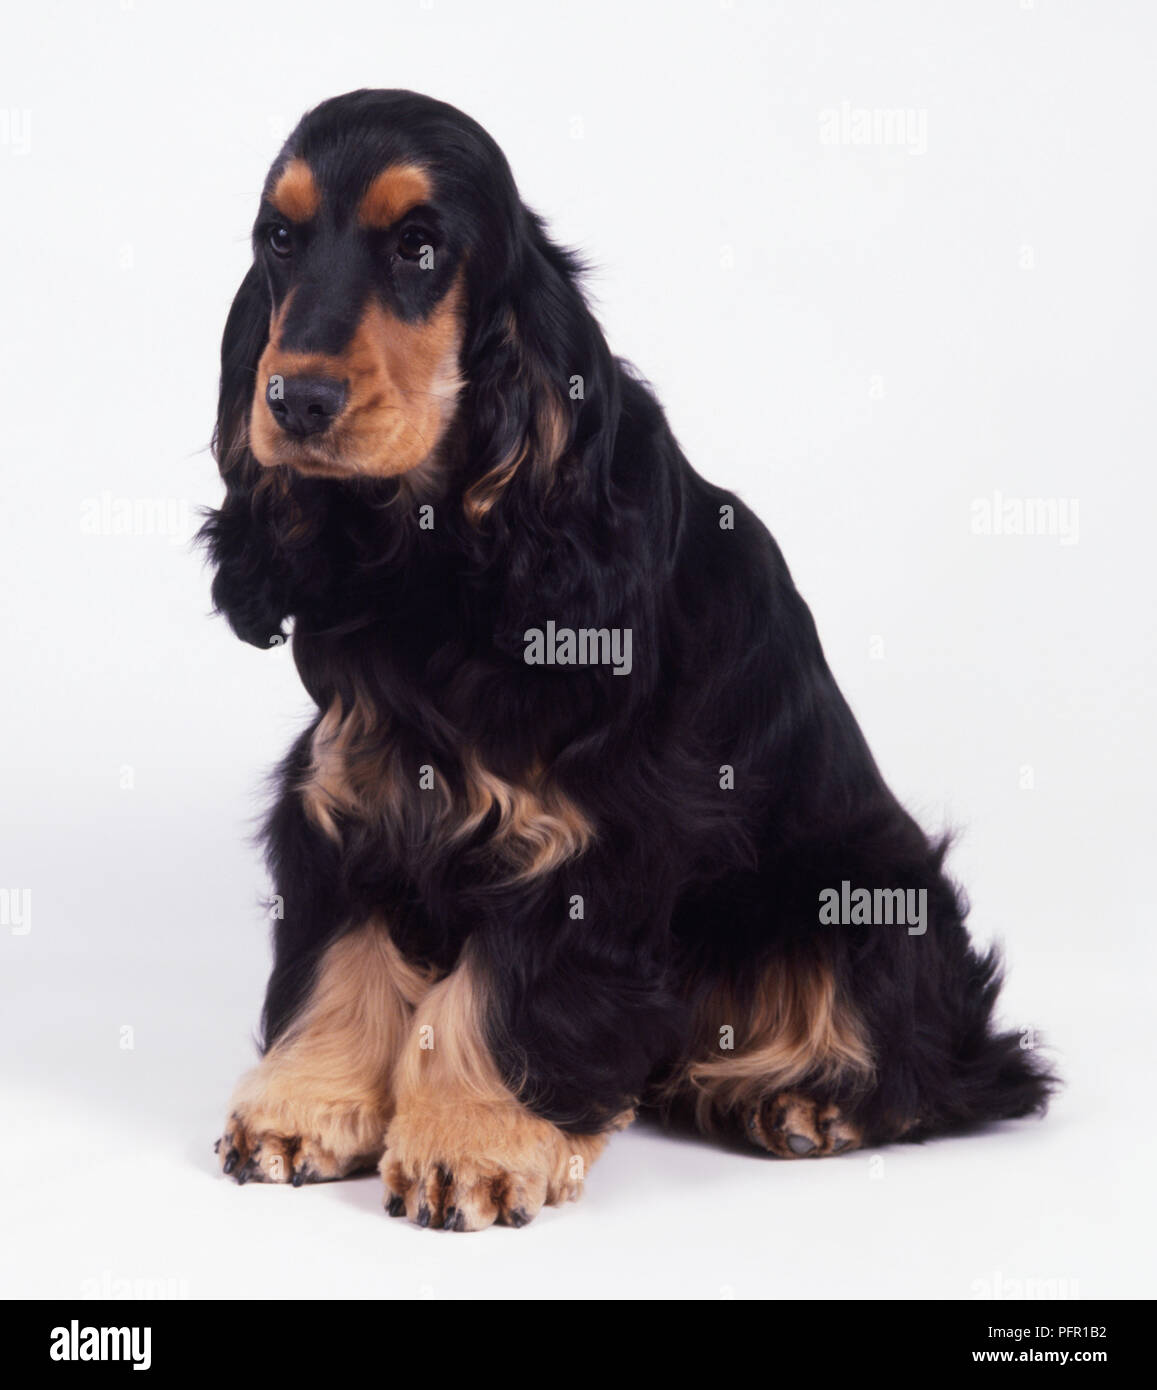 Black And Tan English Cocker Spaniel Sitting Stock Photo Alamy